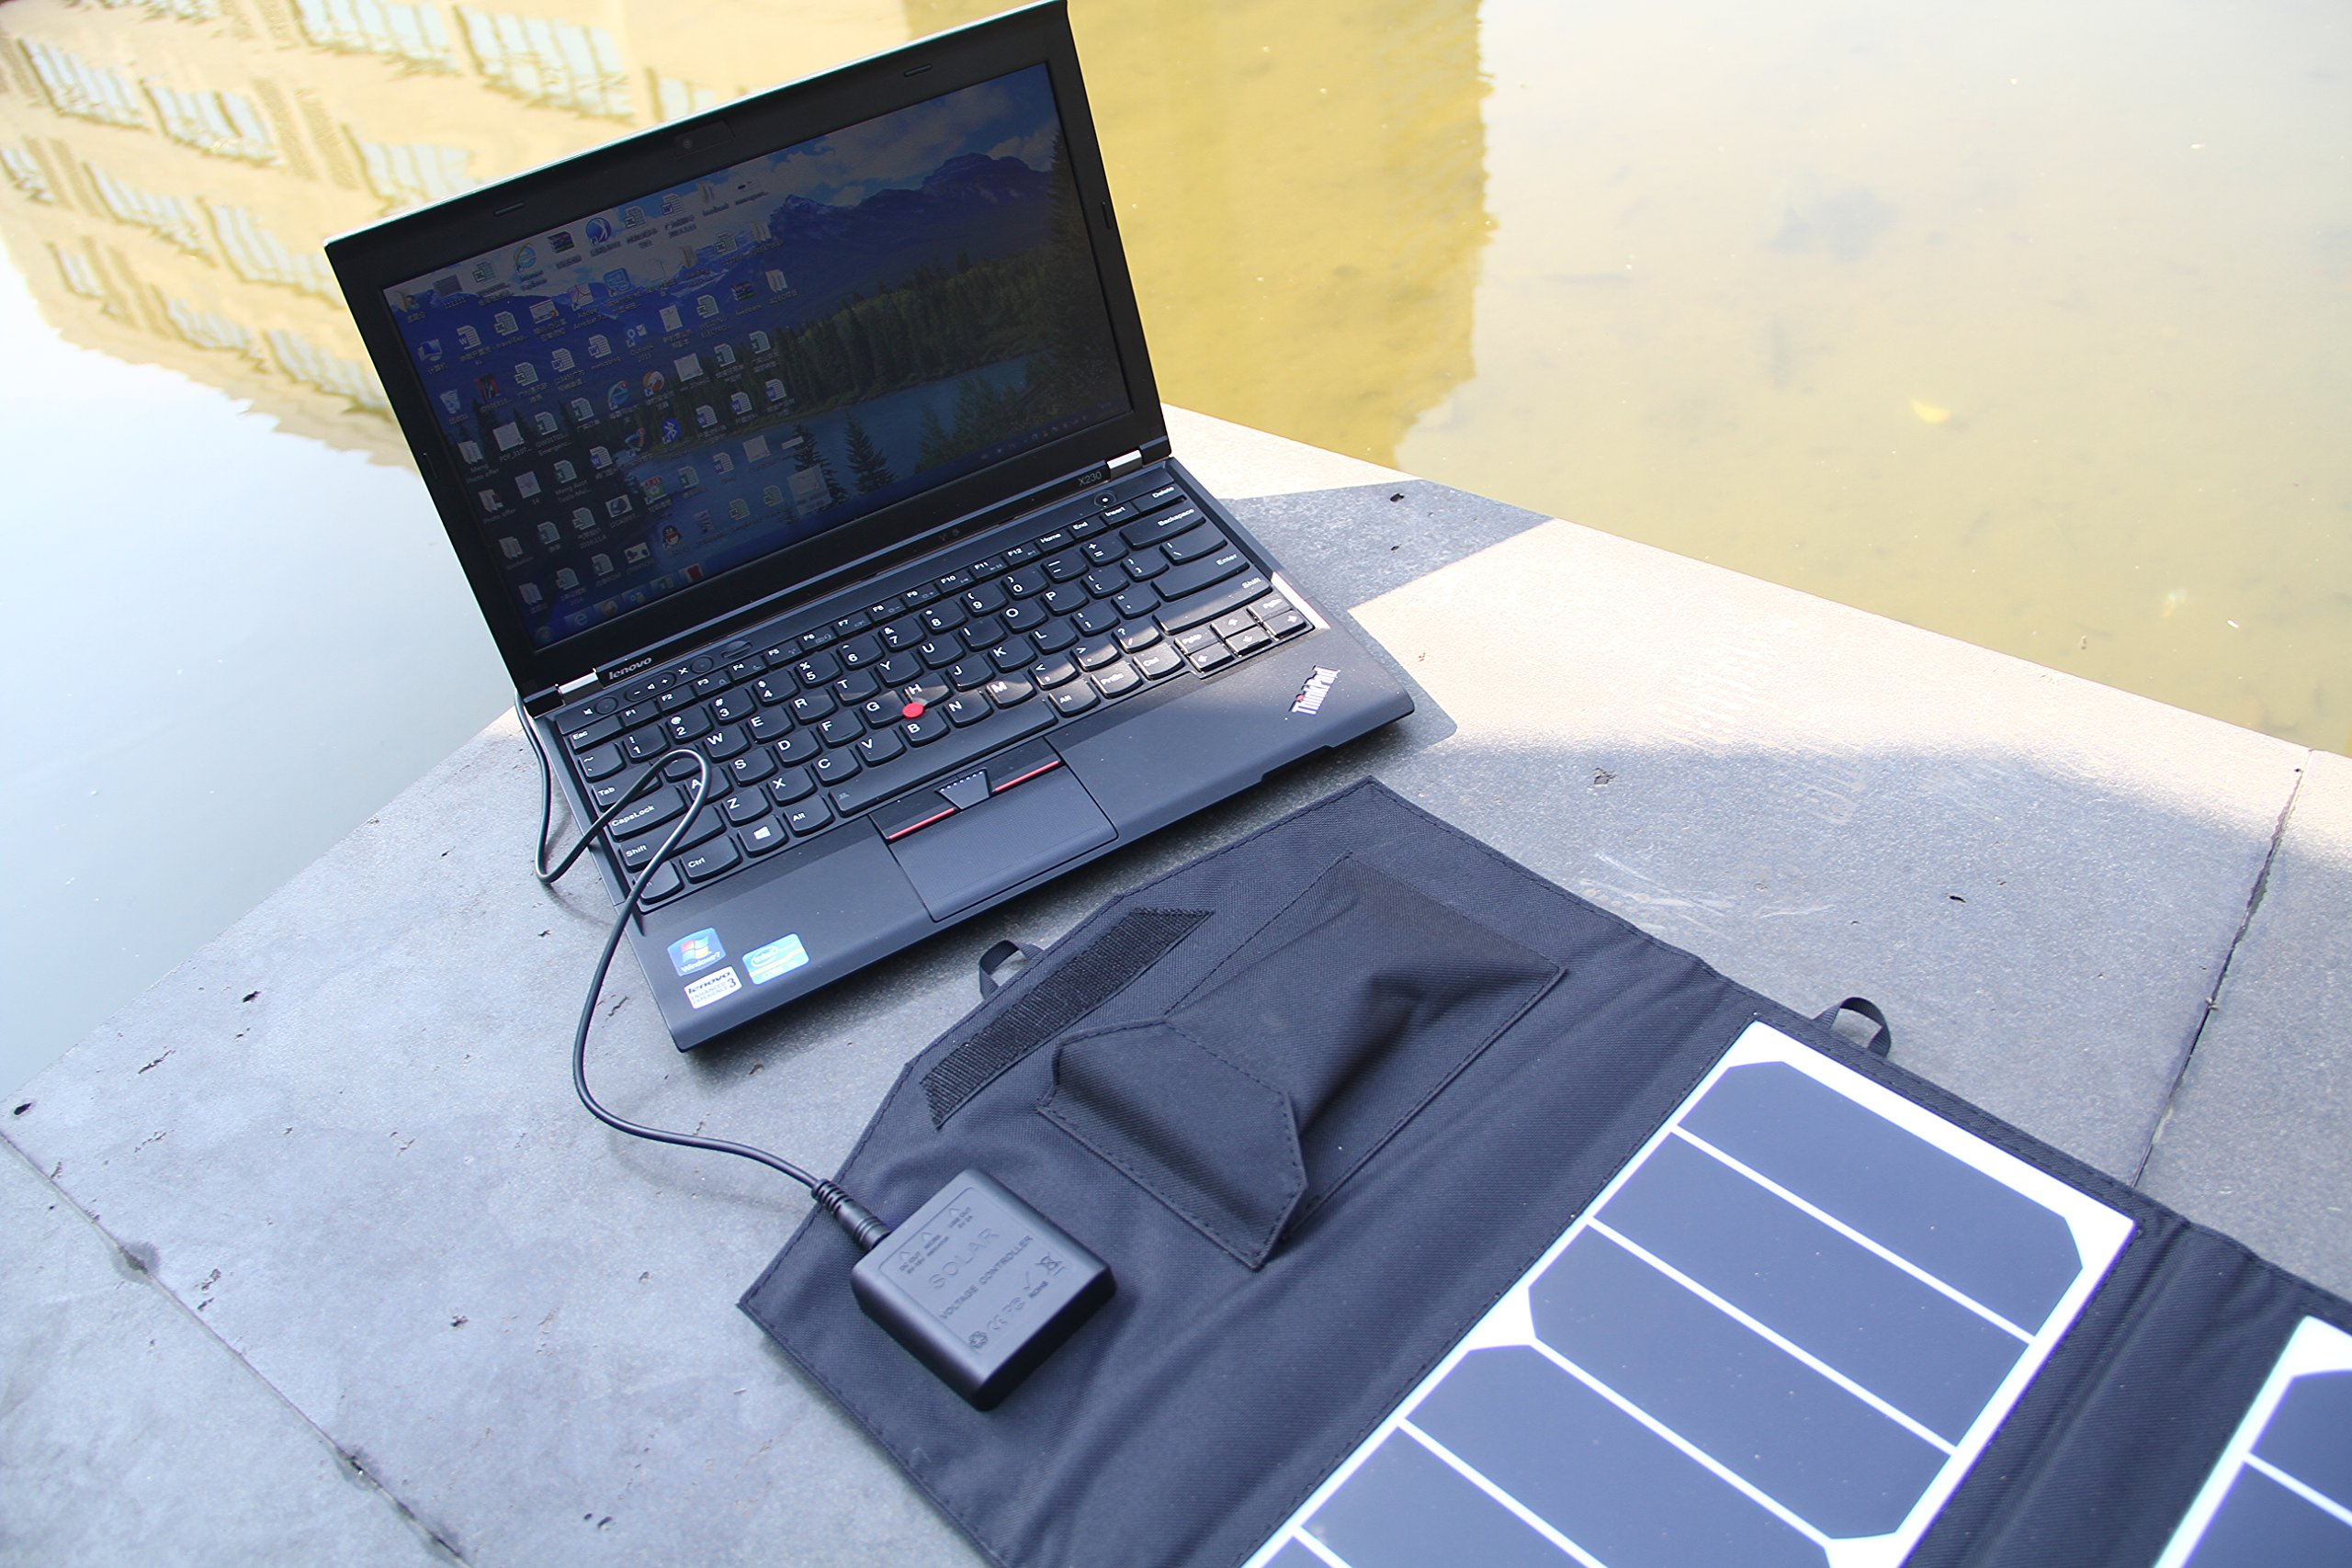 TOPDC 39W Solar Panel Charger Portable Foldable High Efficiency Solar USB Charger (5V USB + 18V DC) for Phone Laptop Samsung iPad GPS Gopro Dell HP Notebook Headset and More by TOPDC (Image #5)